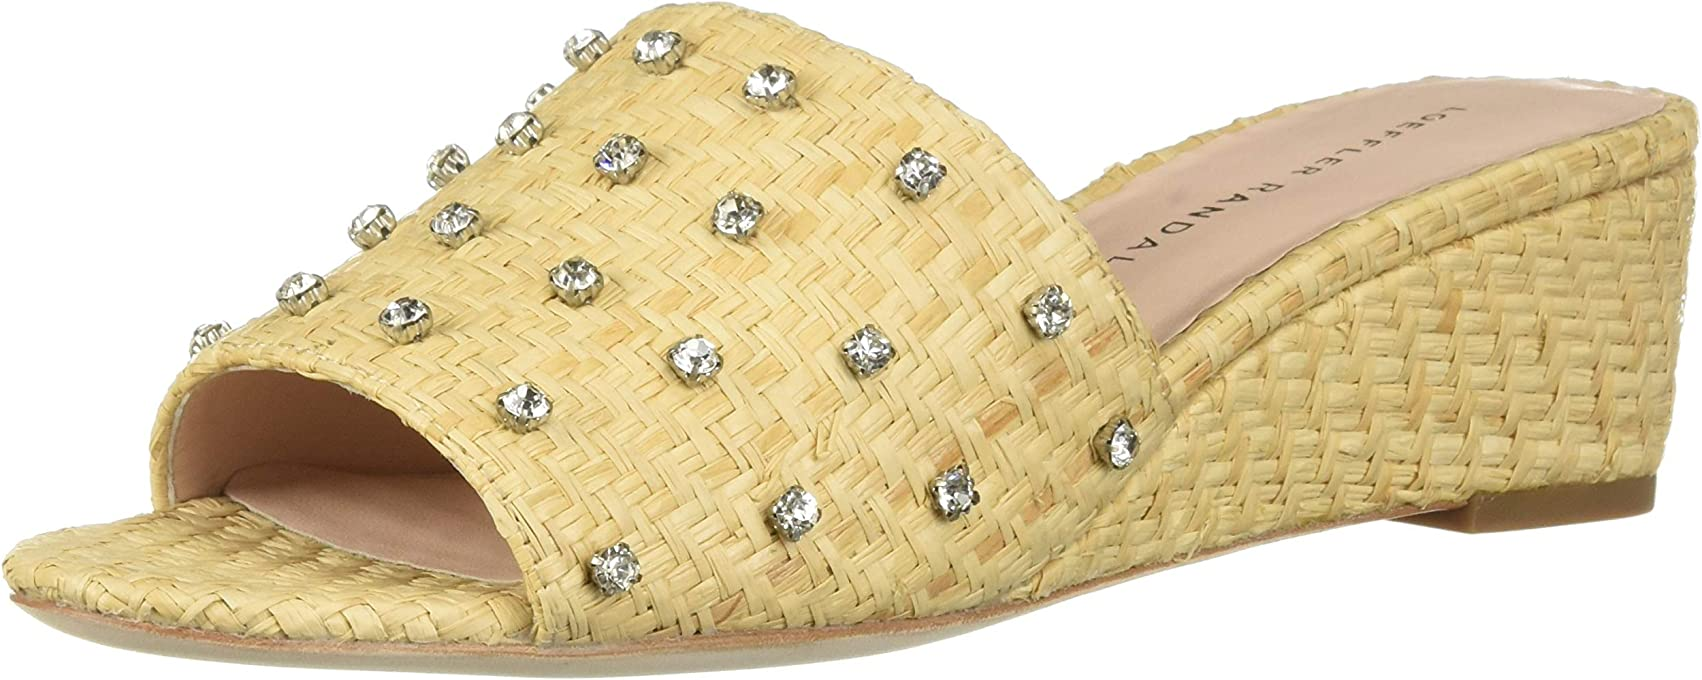 Loeffler Randall Womens Tilly-WRRS Tilly-wrrs Brown Size: